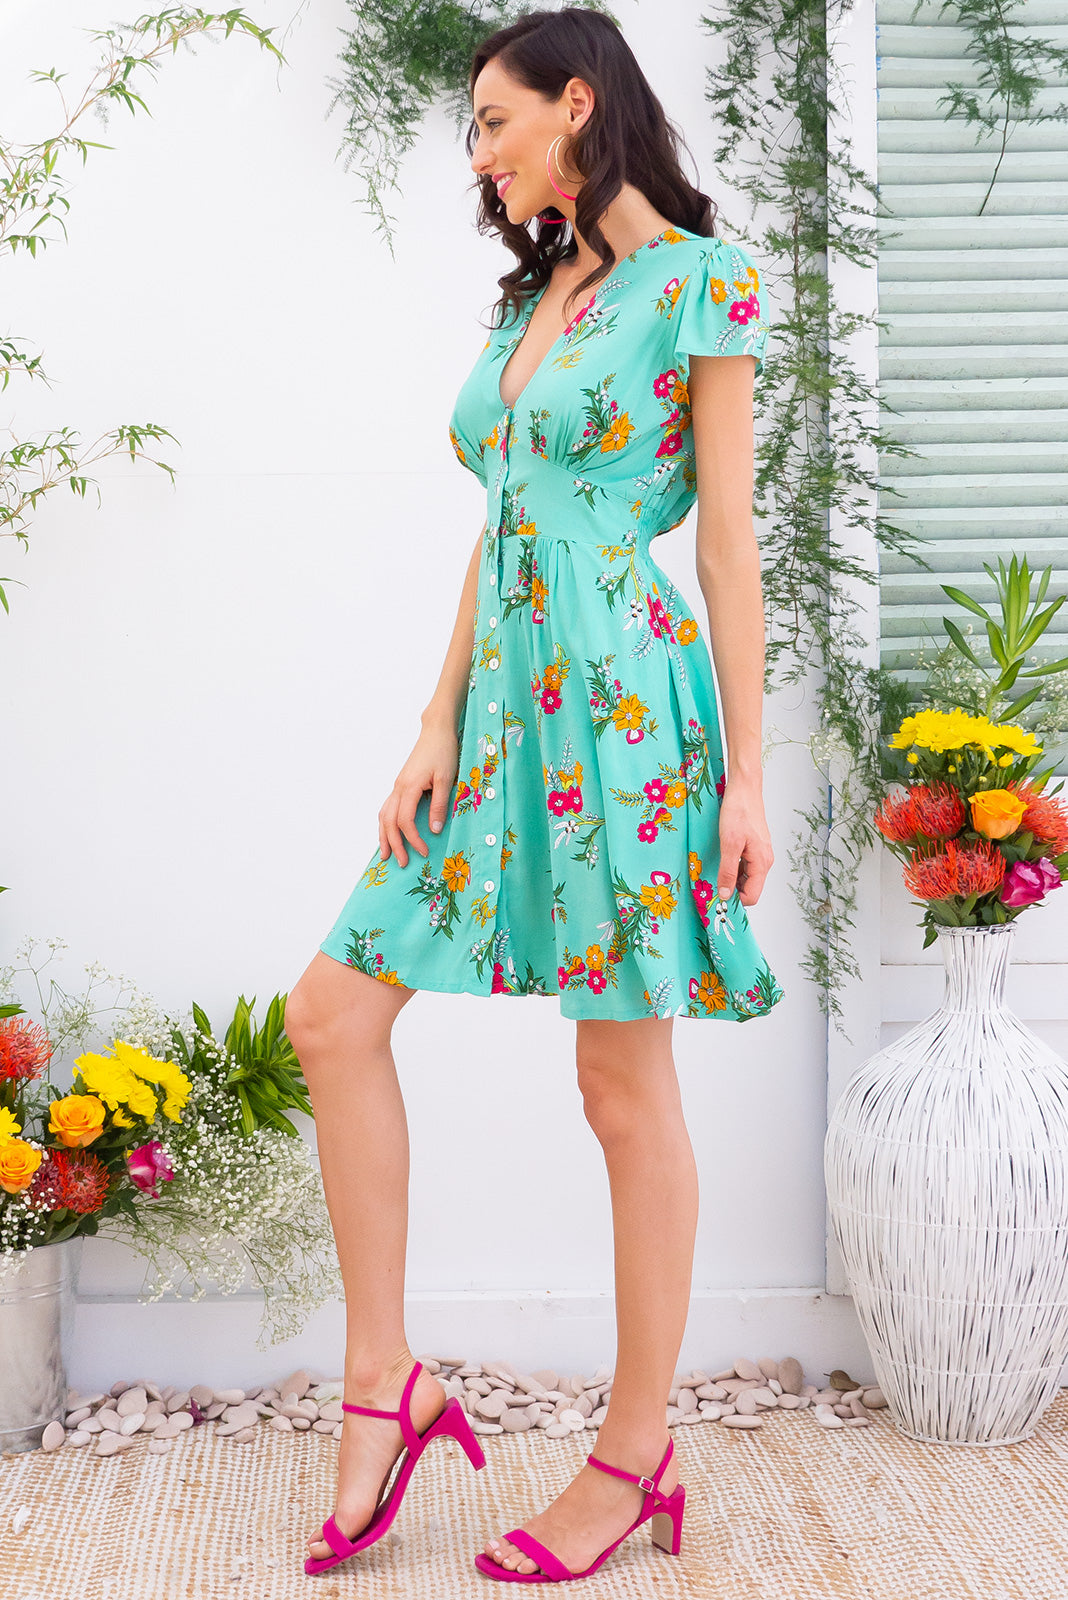 Peggy Minty Green Mini dress features a vintage inspired fitted basque waist and elasticated waist with a cap sleeve, deep v neck and a functional button front the fabric is a soft woven rayon in a fresh minty green with a bright floral print